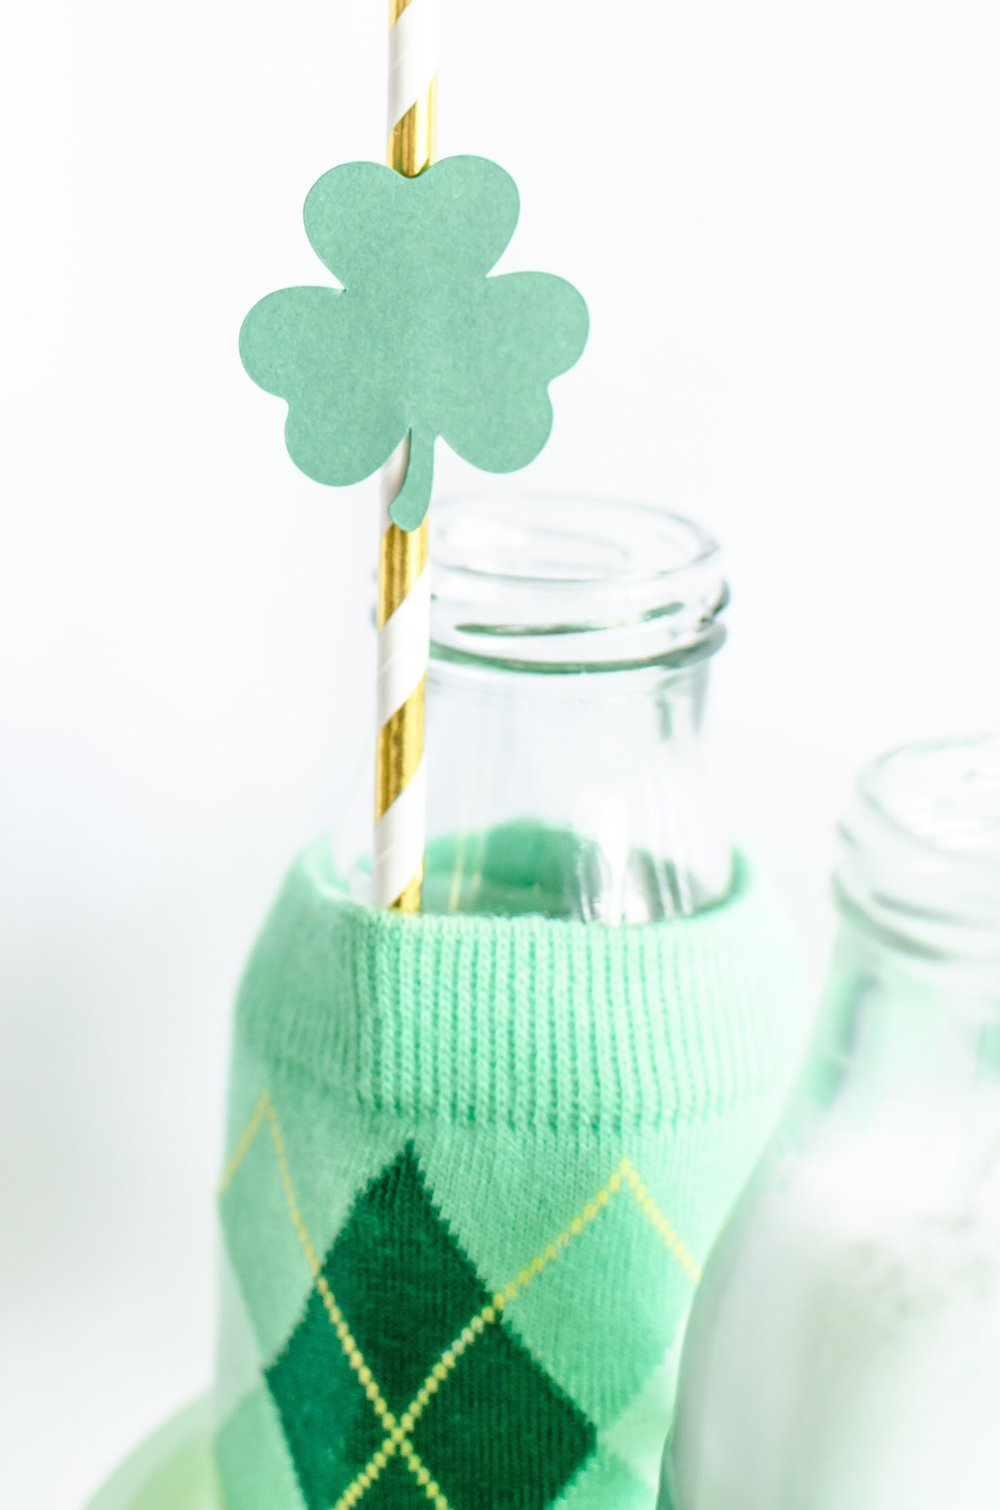 You'll never guess how simple it is to make these adorable cup wrappers - come see the full DIY on Mint Event Design www.minteventdesign.com #partyideas #partydecorations #saintpatricksday #stpatricksday #diycrafts #holidaycrafts #stpatricksdaycraft